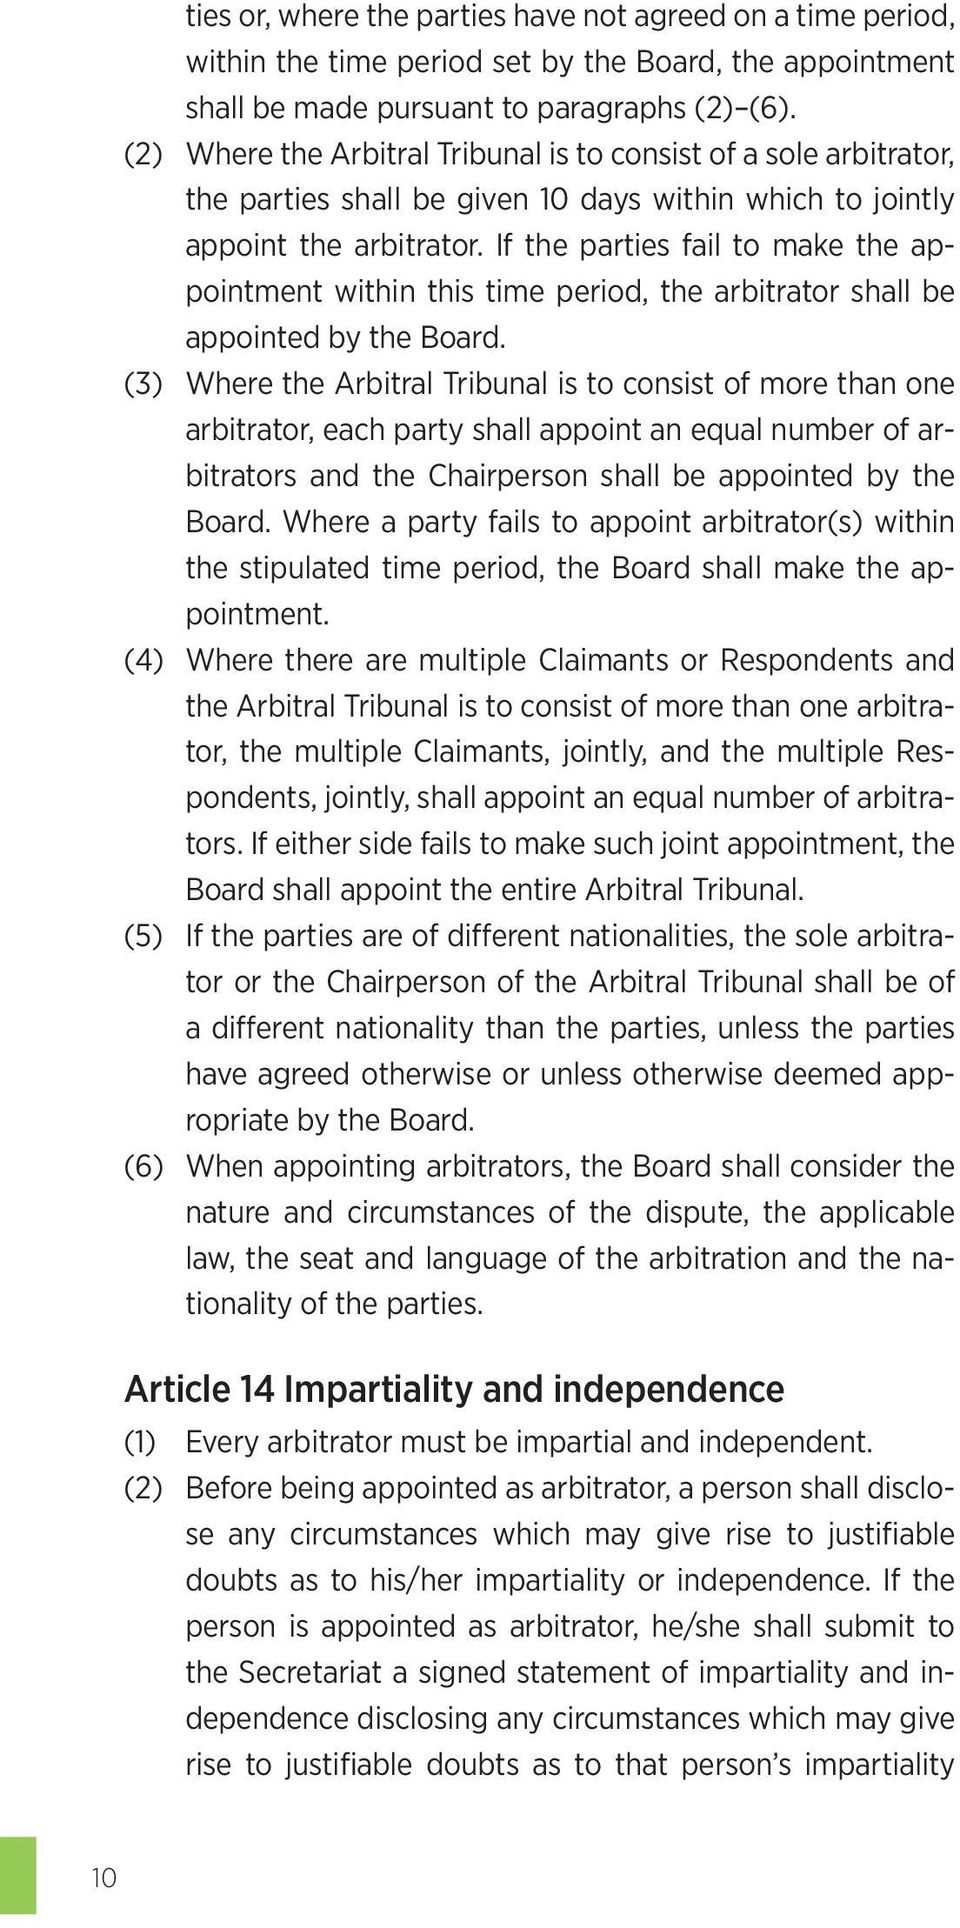 If the parties fail to make the appointment within this time period, the arbitrator shall be appointed by the Board.